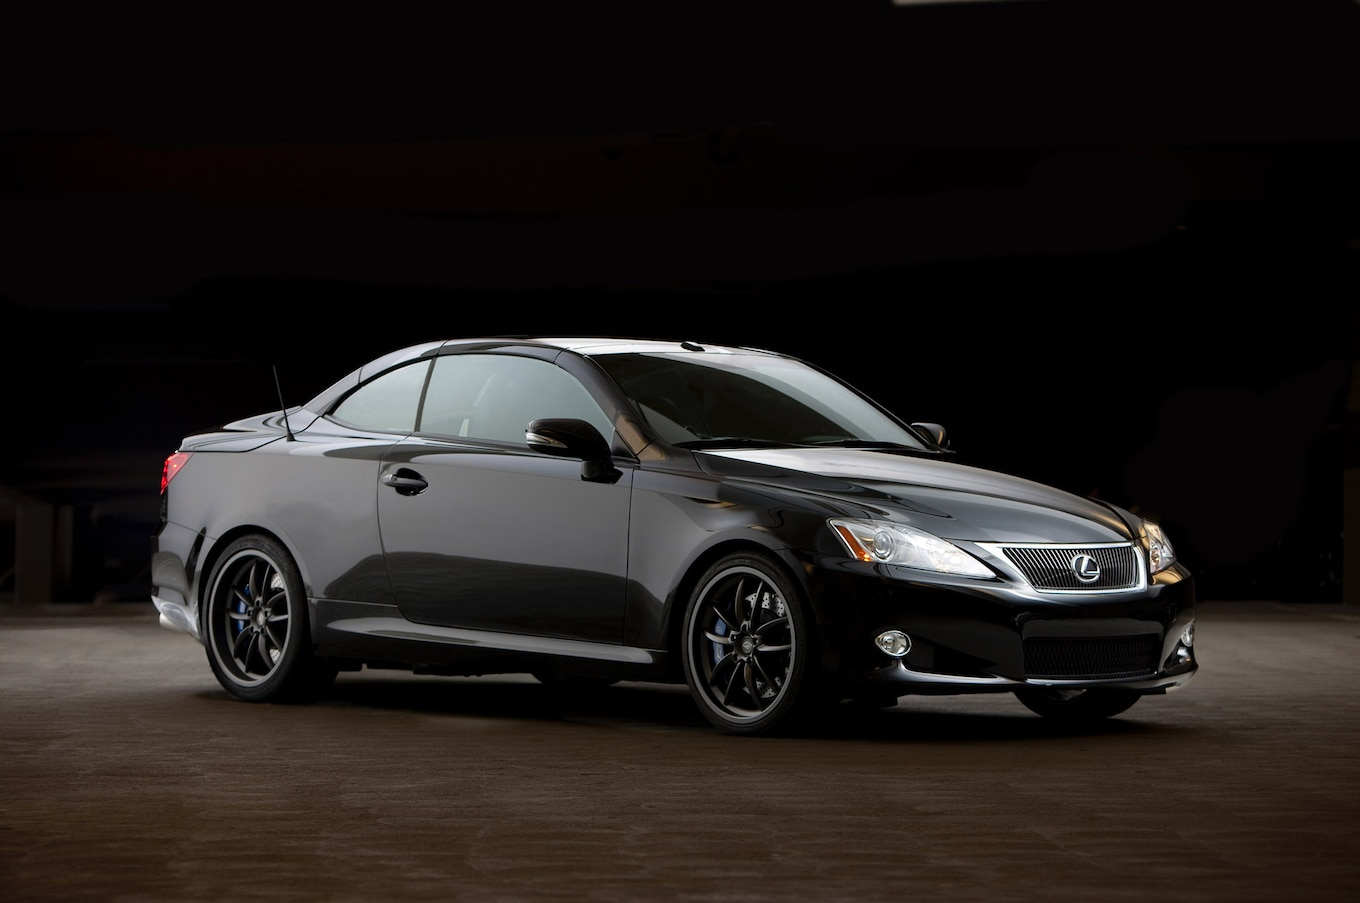 2013 Lexus IS F Reviews and Rating